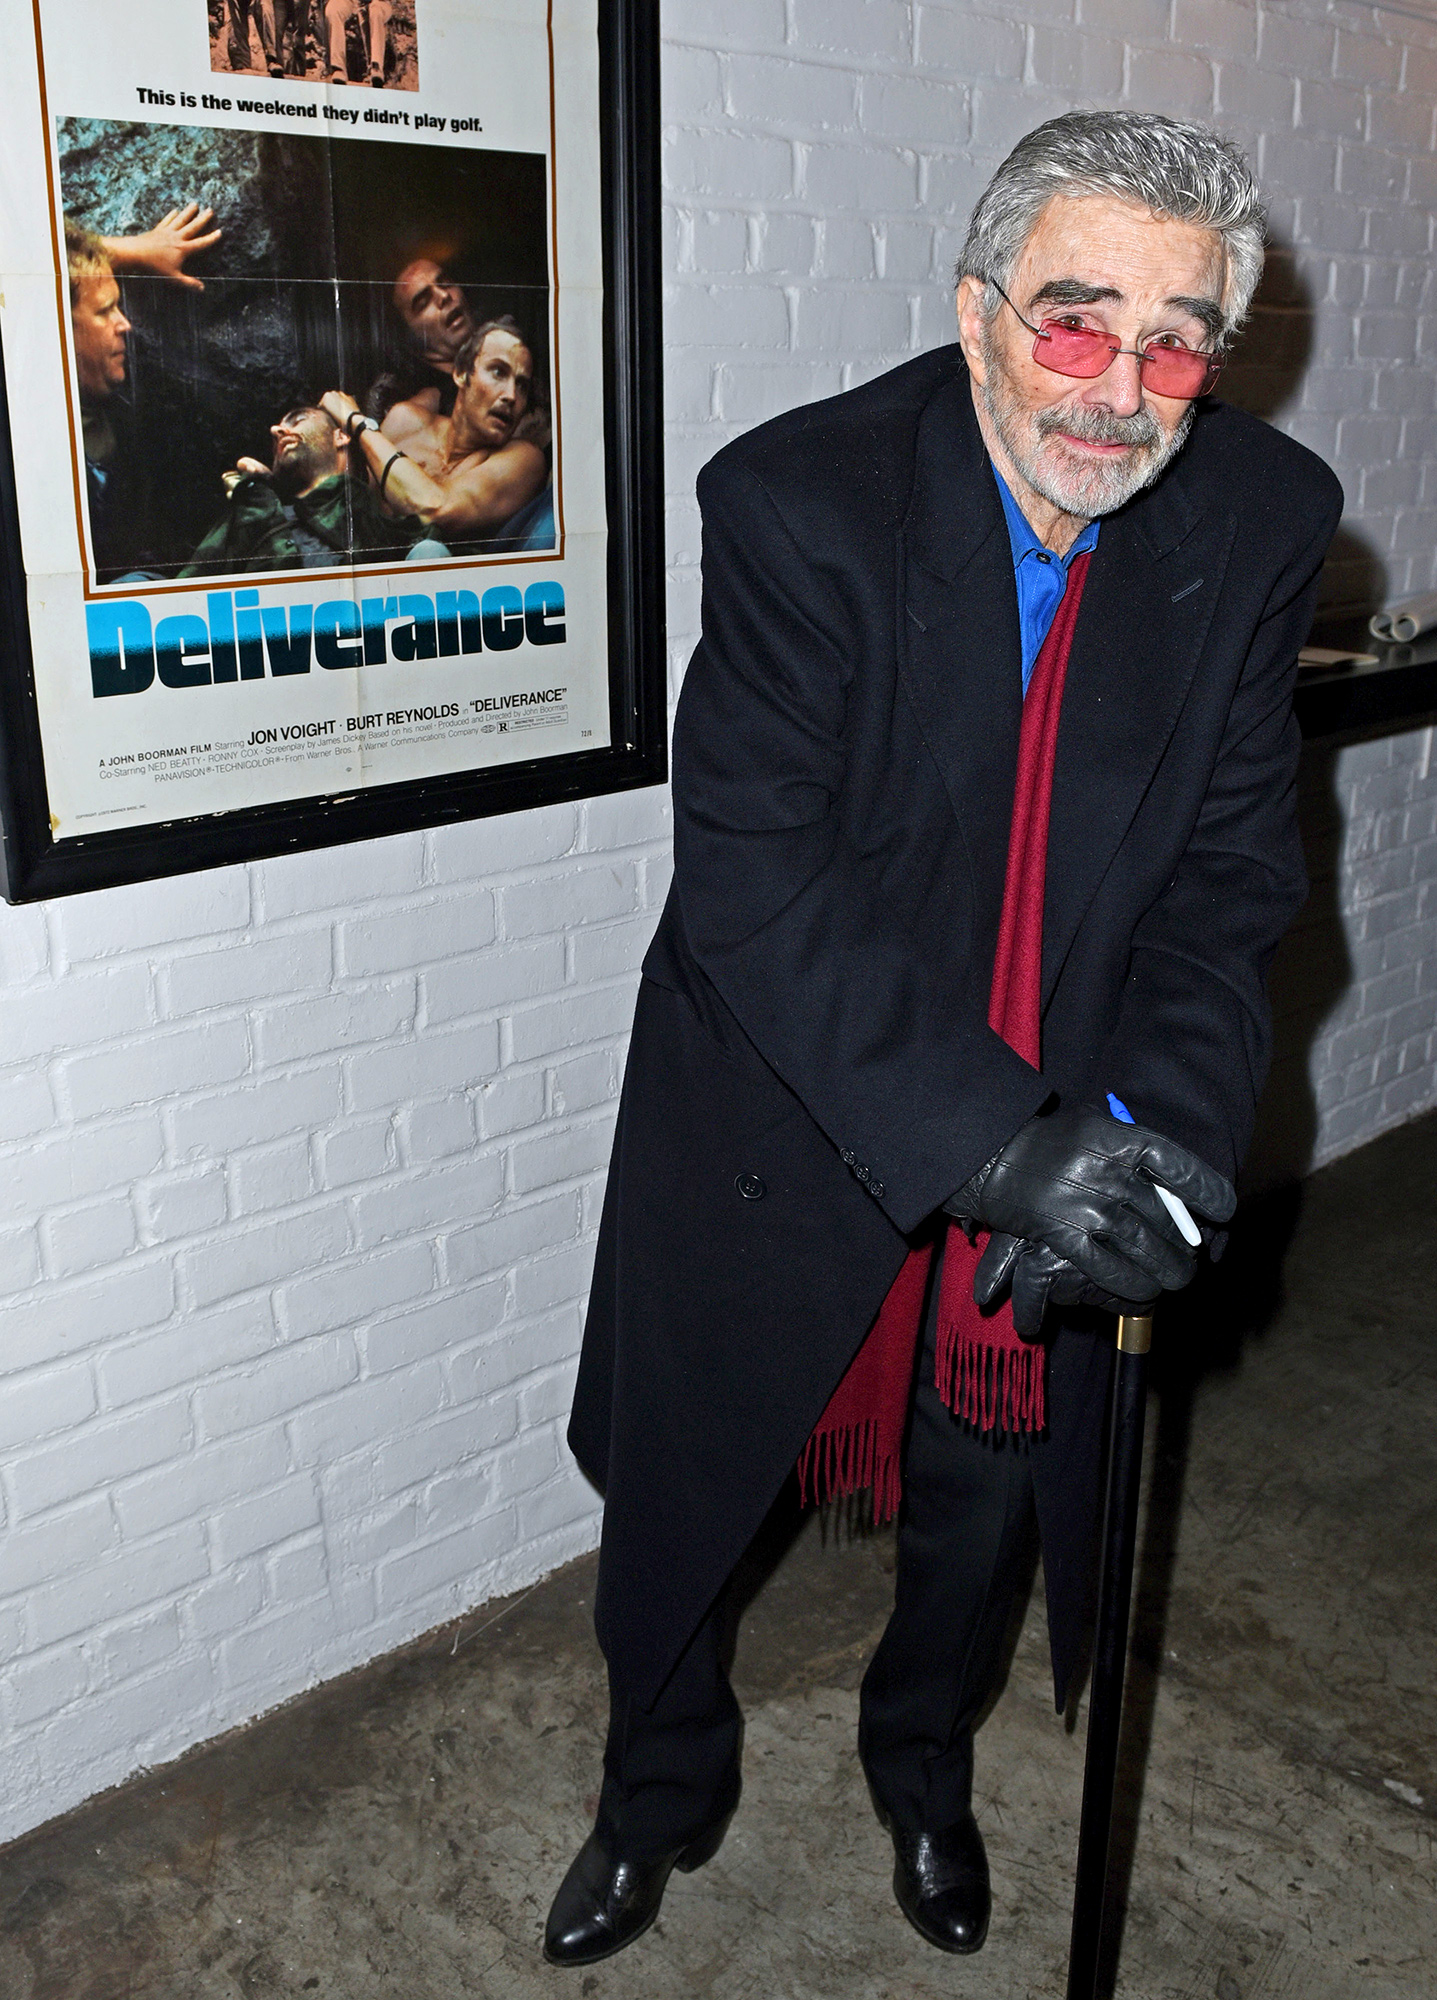 Burt Reynolds appears at the Metrograph, NYC